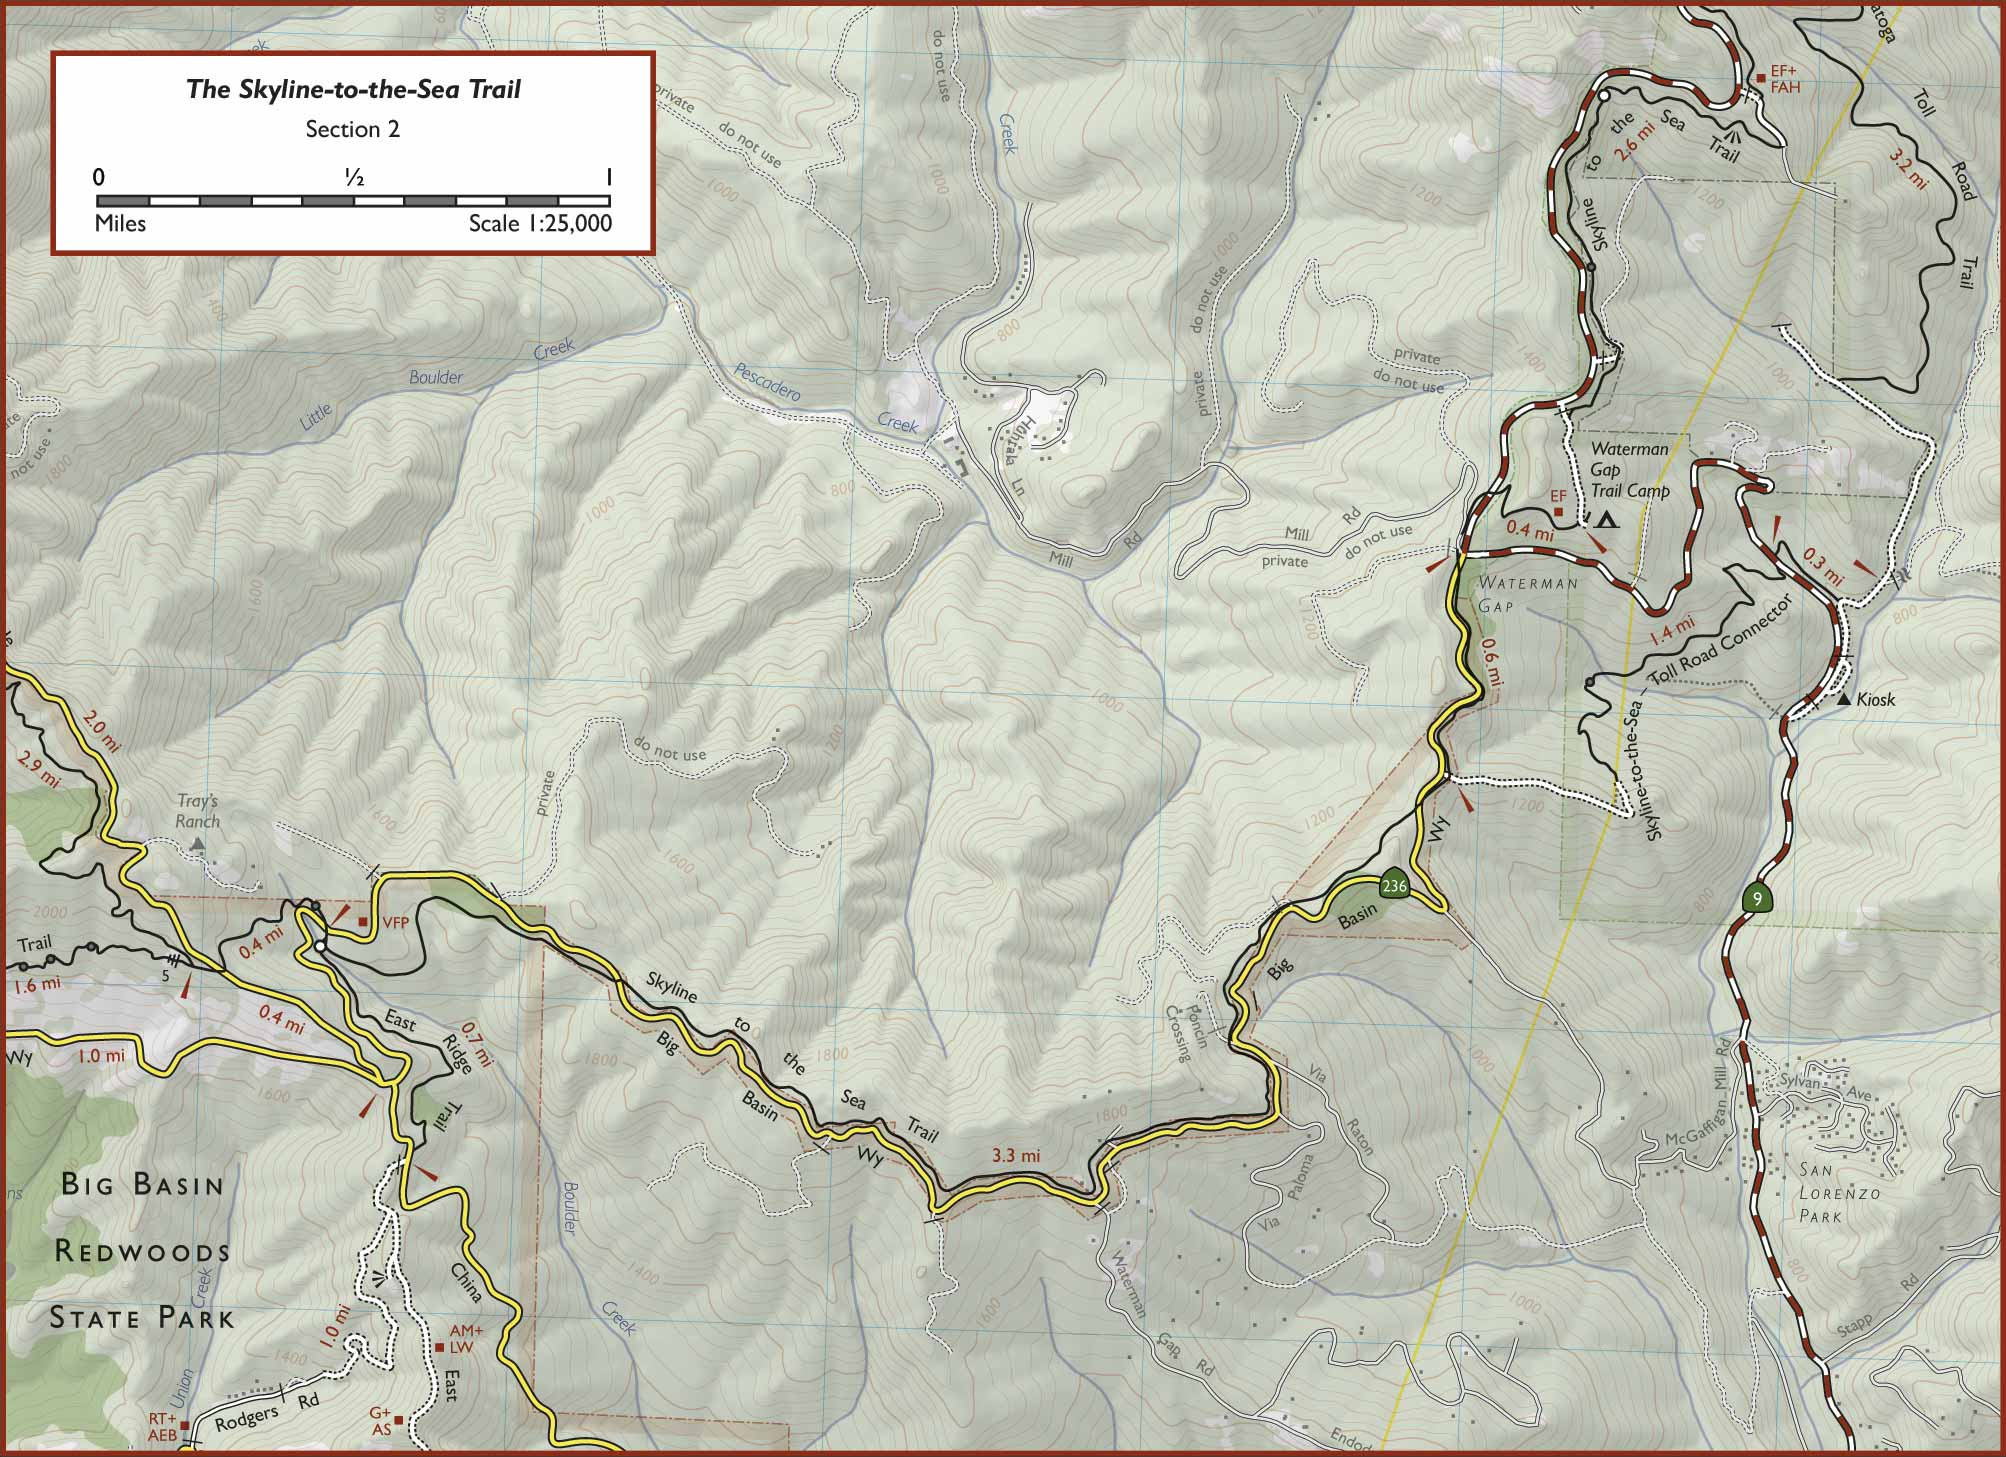 Skyline to the Sea Trail map